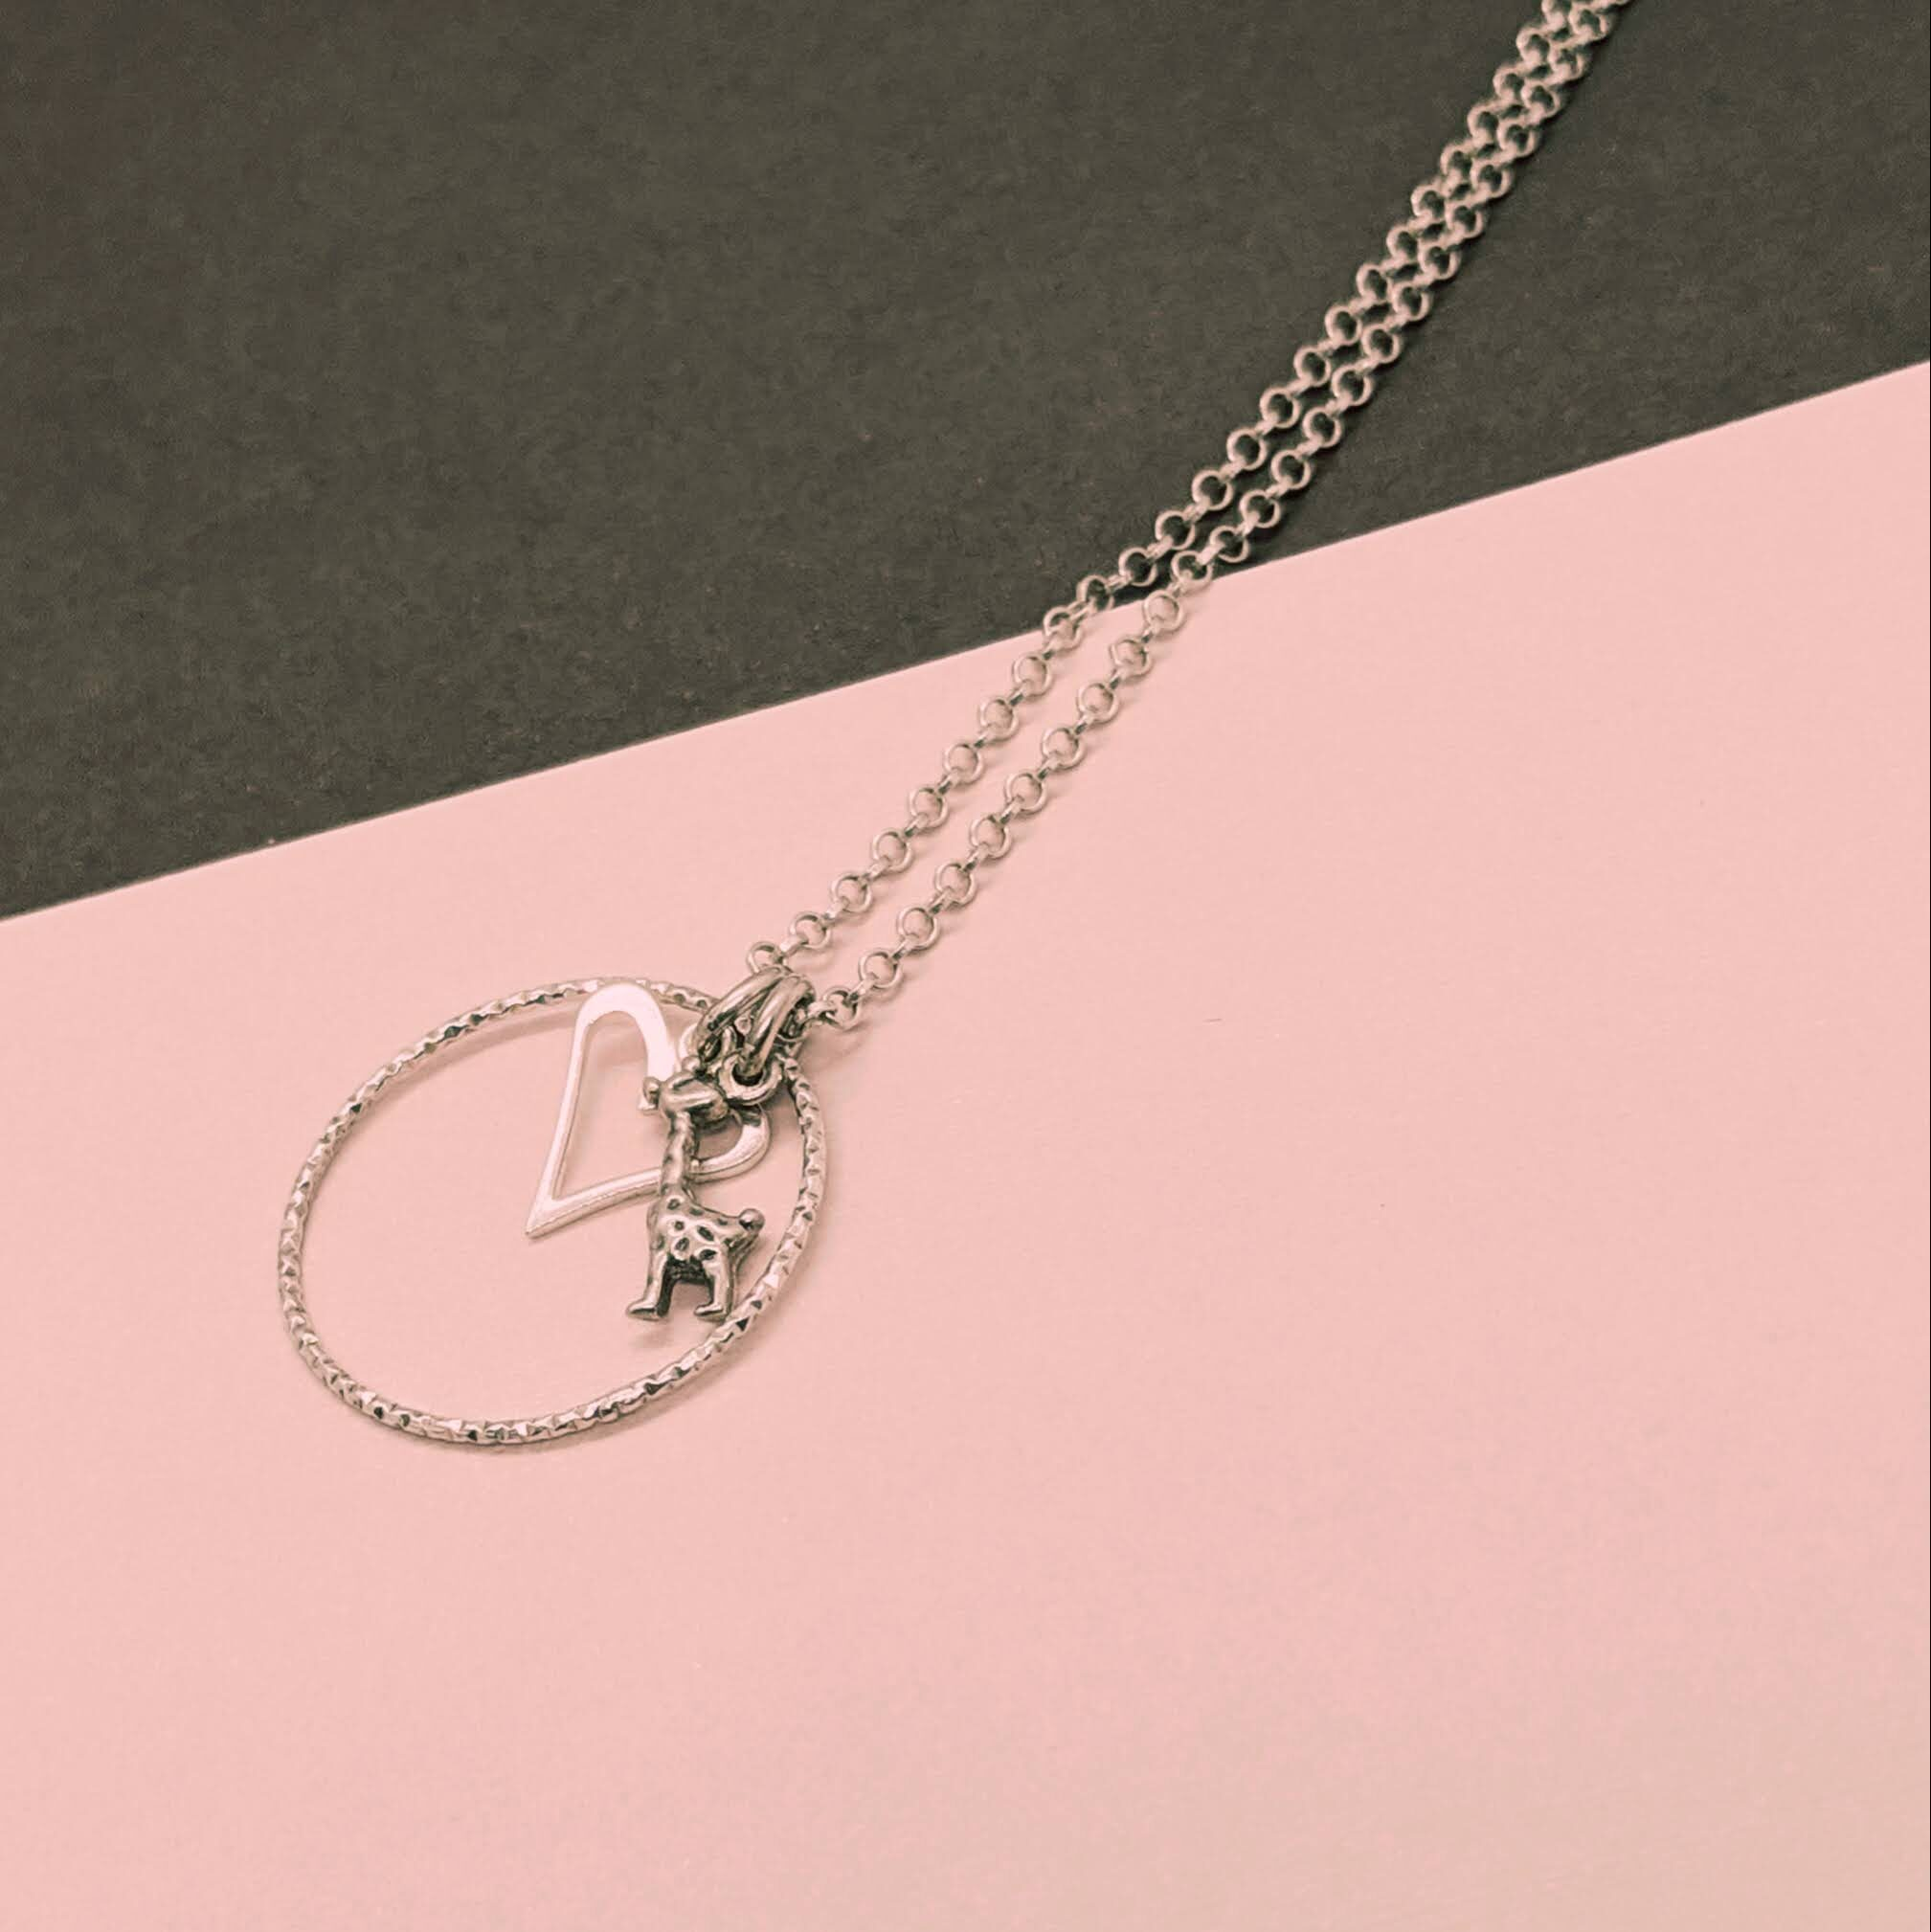 V-Heart with Giraffe Tag Charm Necklace